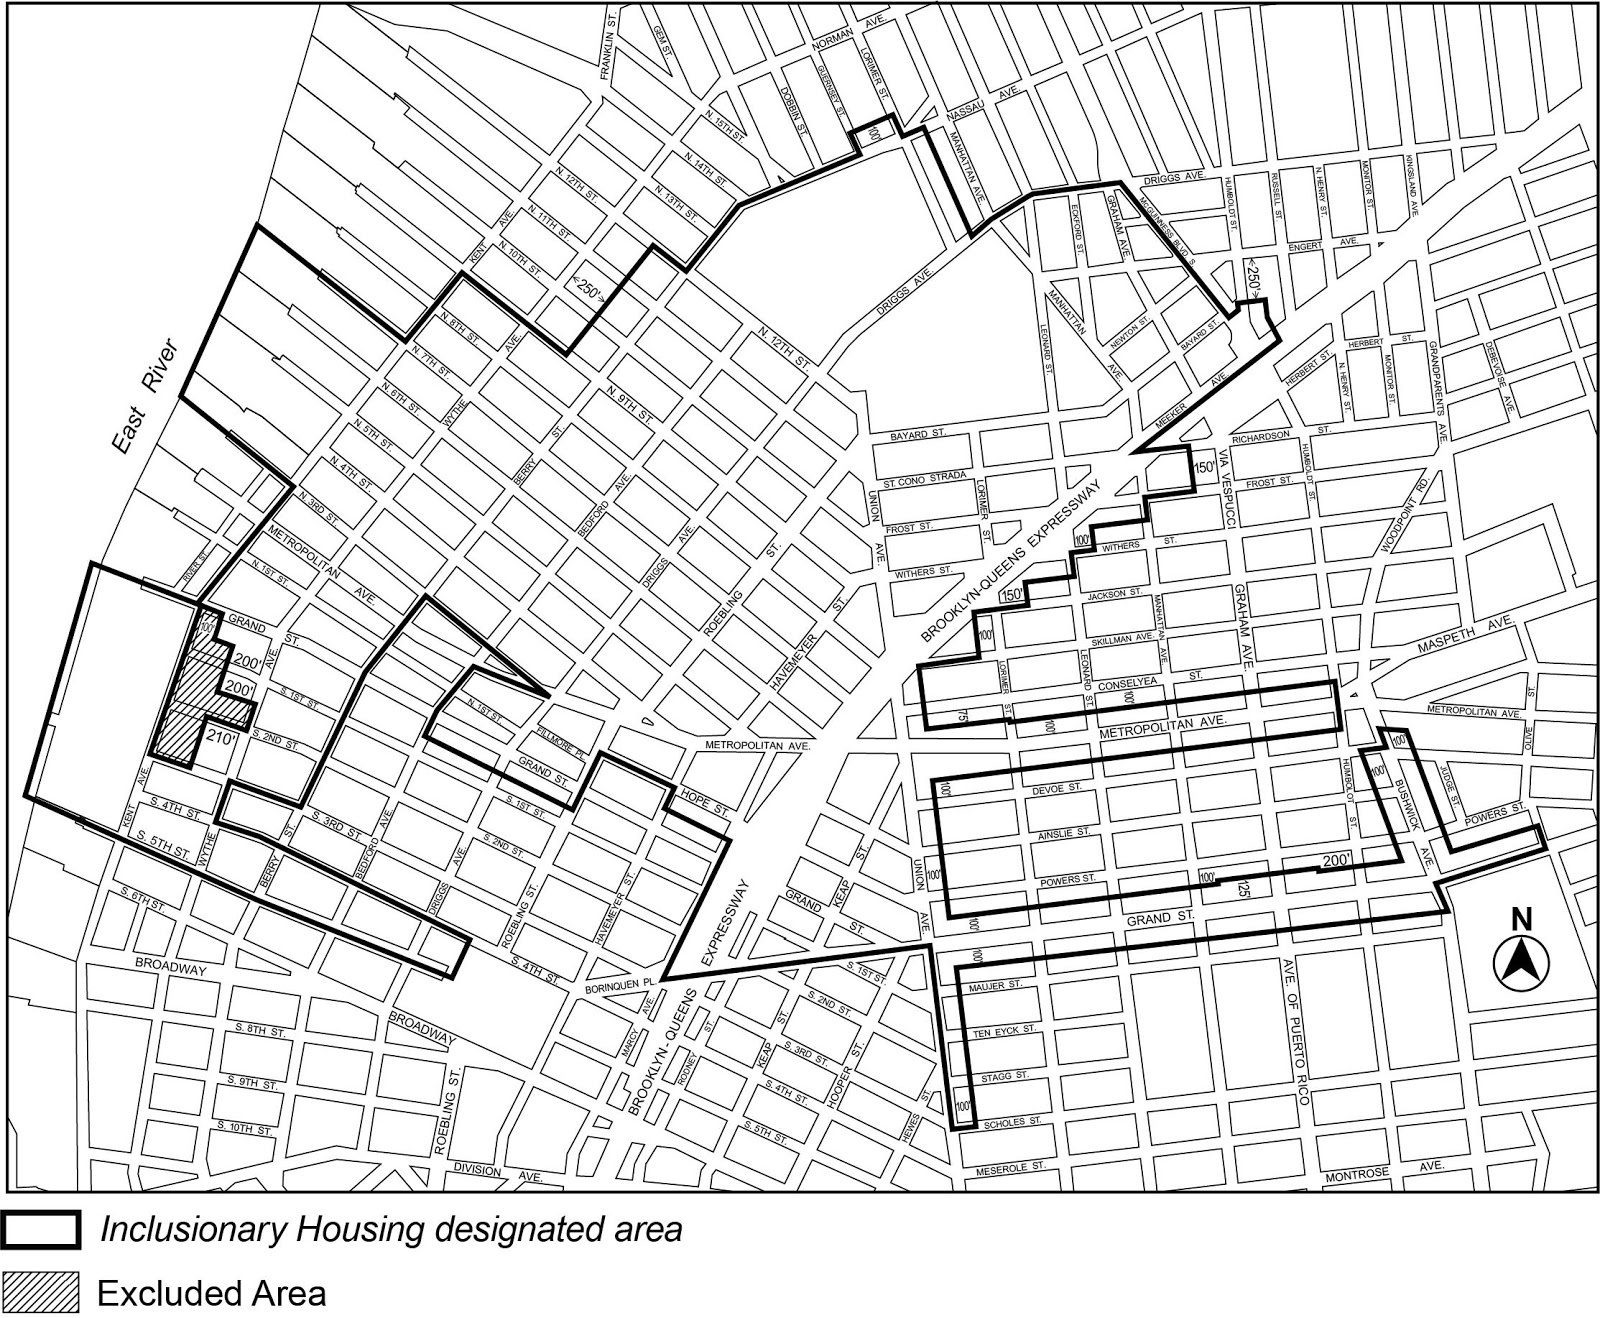 Zoning Resolutions F-Inclusionary Housing Designated Areas and Mandatory Inclusionary Housing Areas_2.37